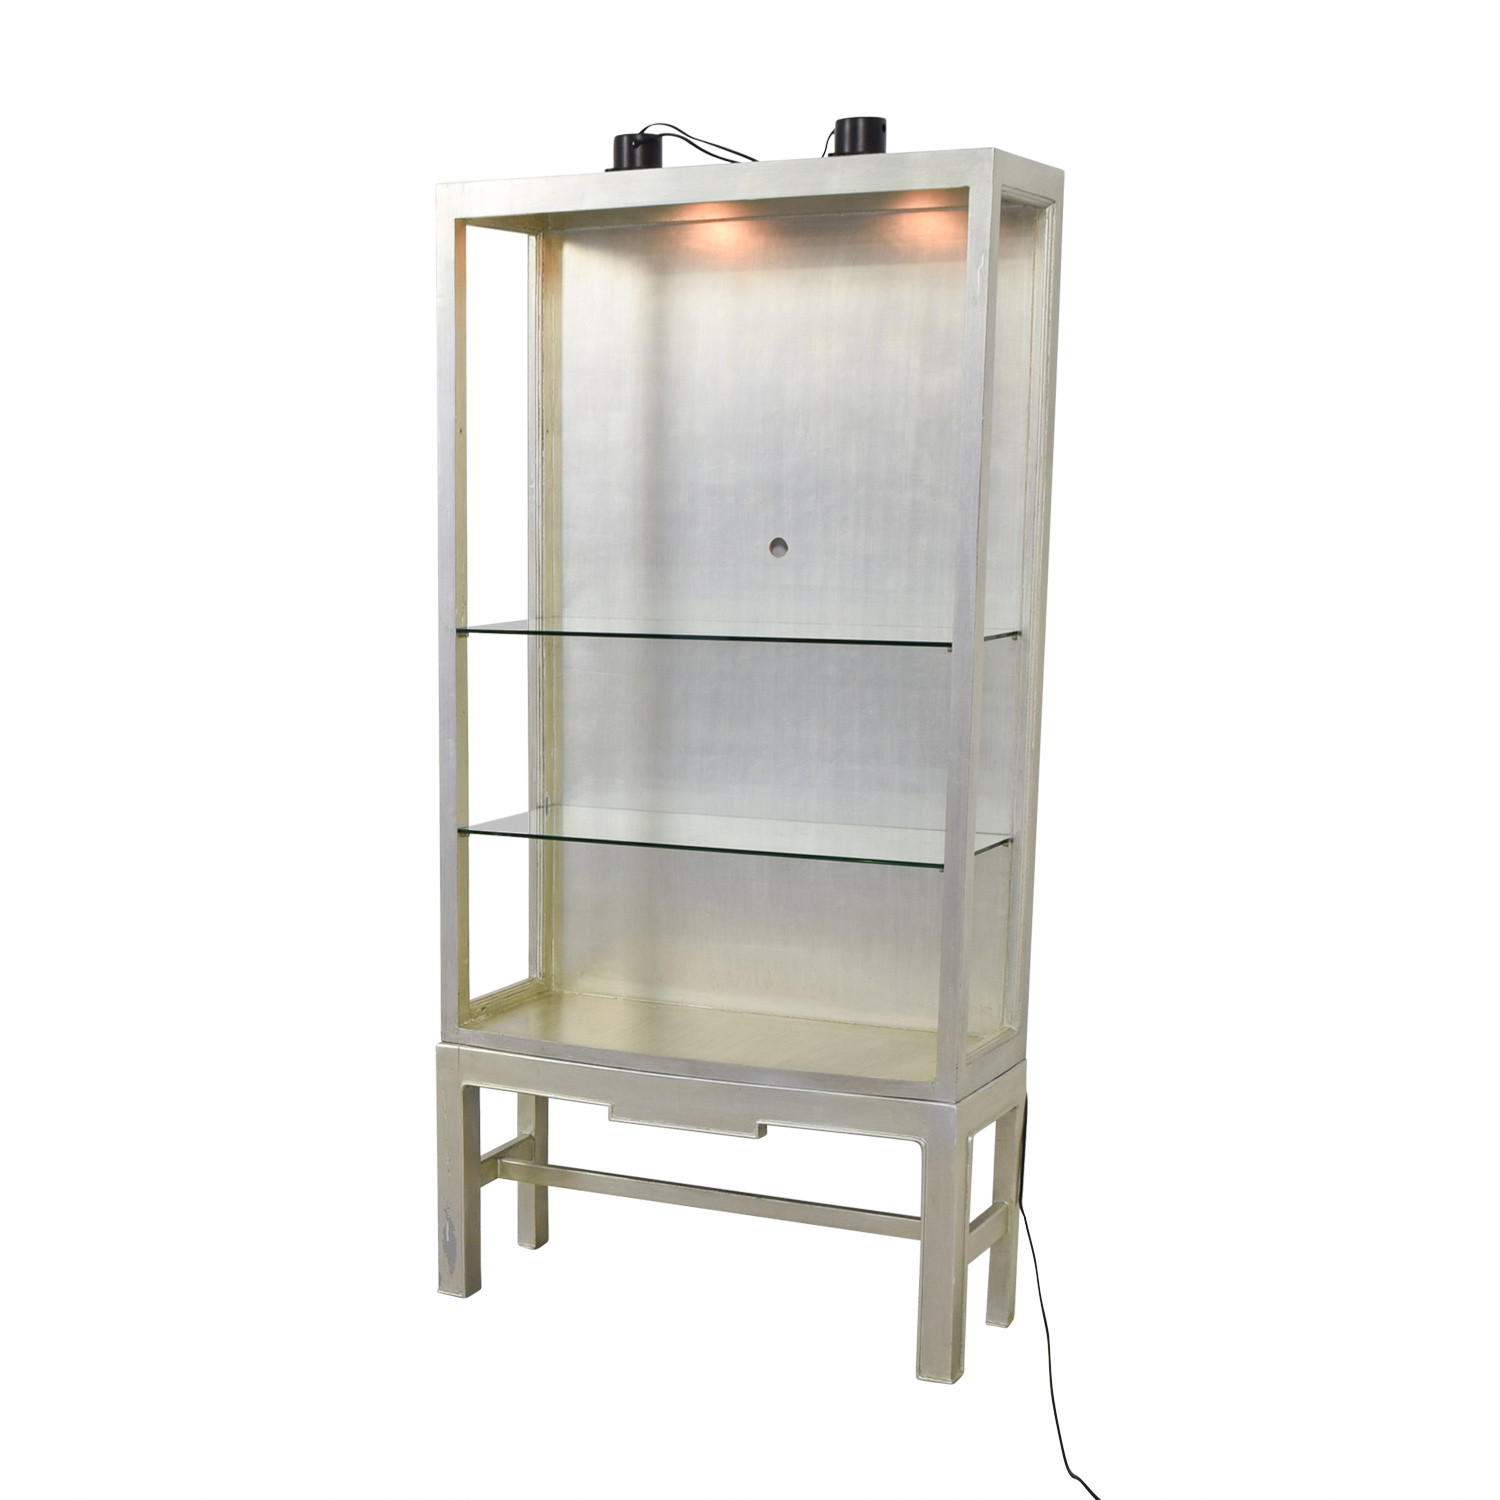 Horchow Silver and Glass Shelving Unit with Lights Horchow